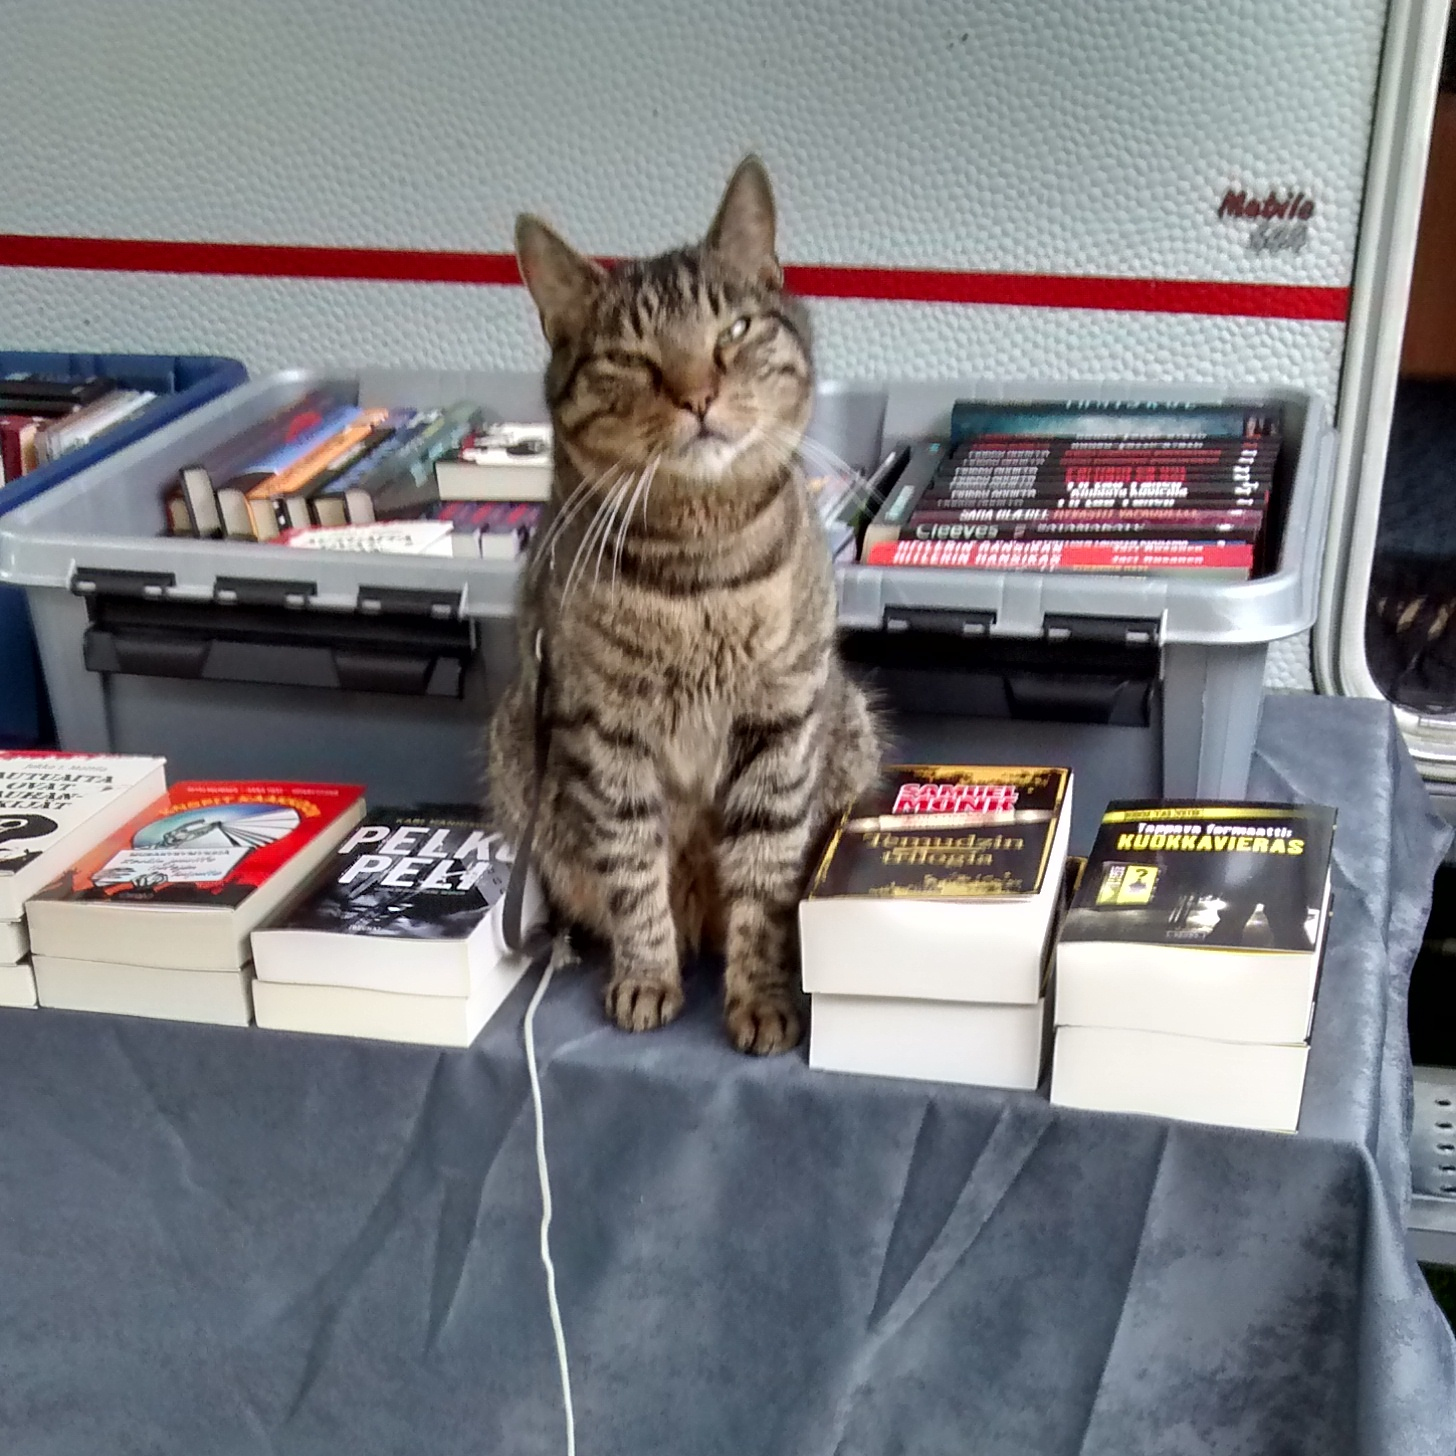 The undoubted star of the show at the Dekkarit Festival... the bookshop cat.